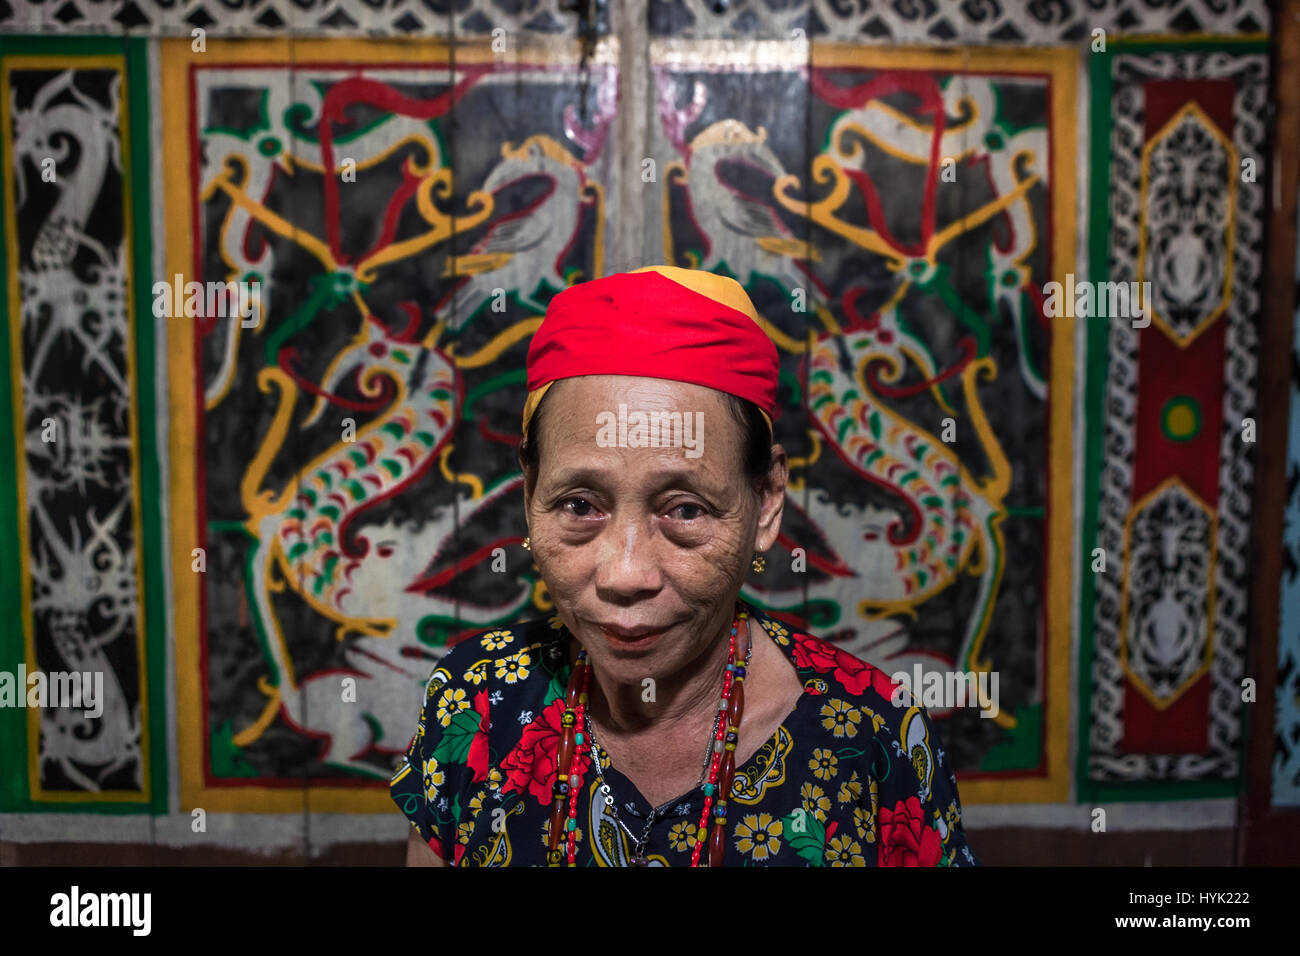 Woman in Dayak Taman traditional attire poses for a portrait with Dayaknese wall painting as the background. © - Stock Image